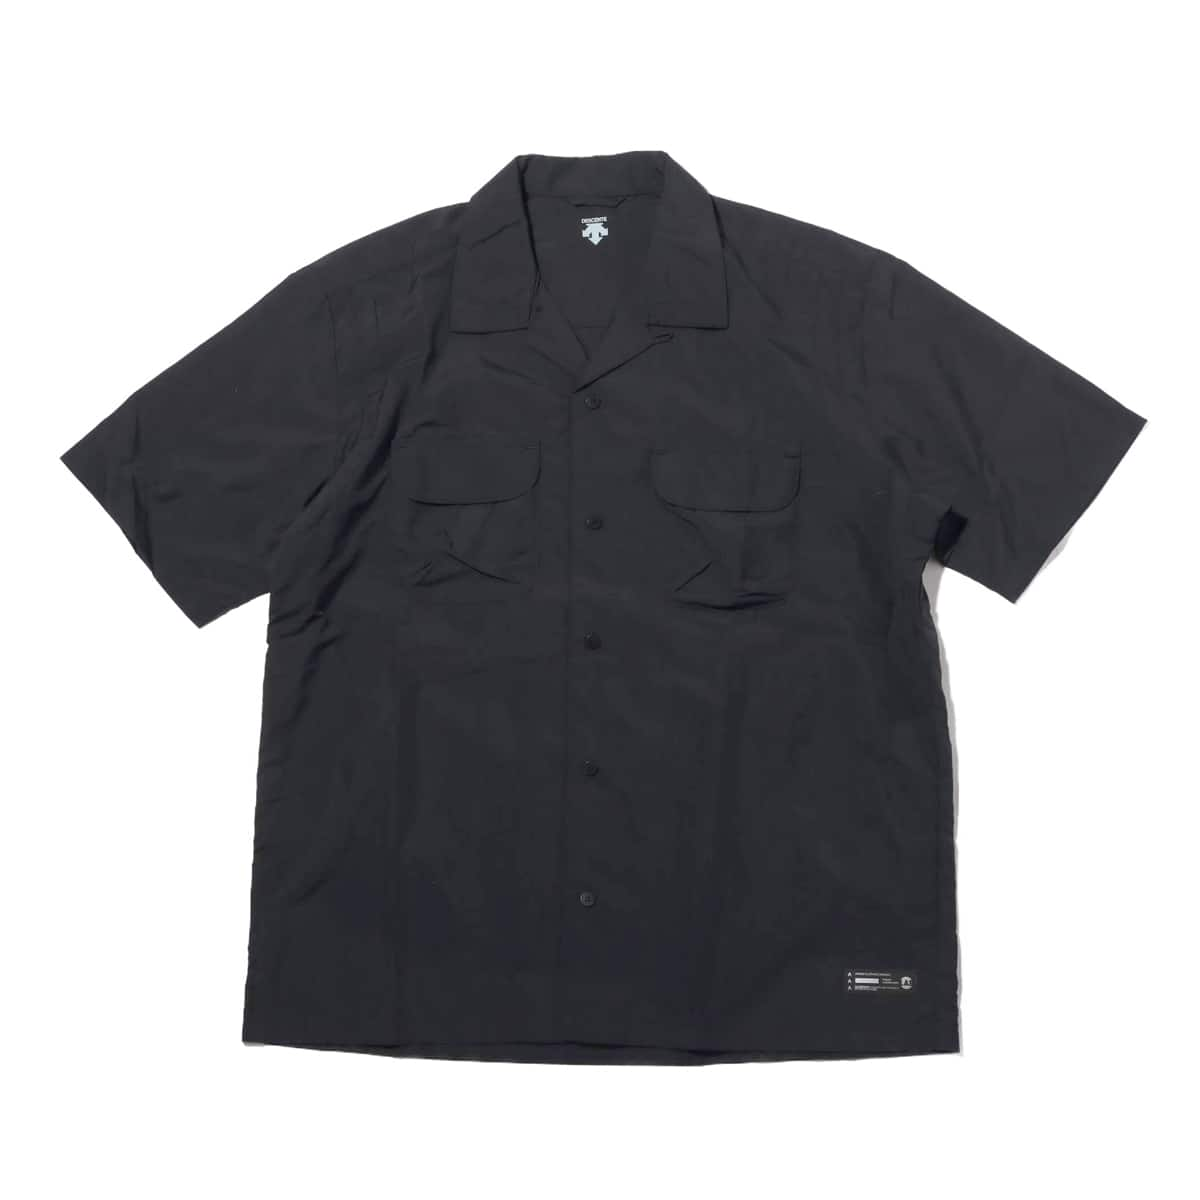 DESCENTE ddd X ATMOS LAB H/S BORING SHIRT BLACK 19SP-I_photo_large